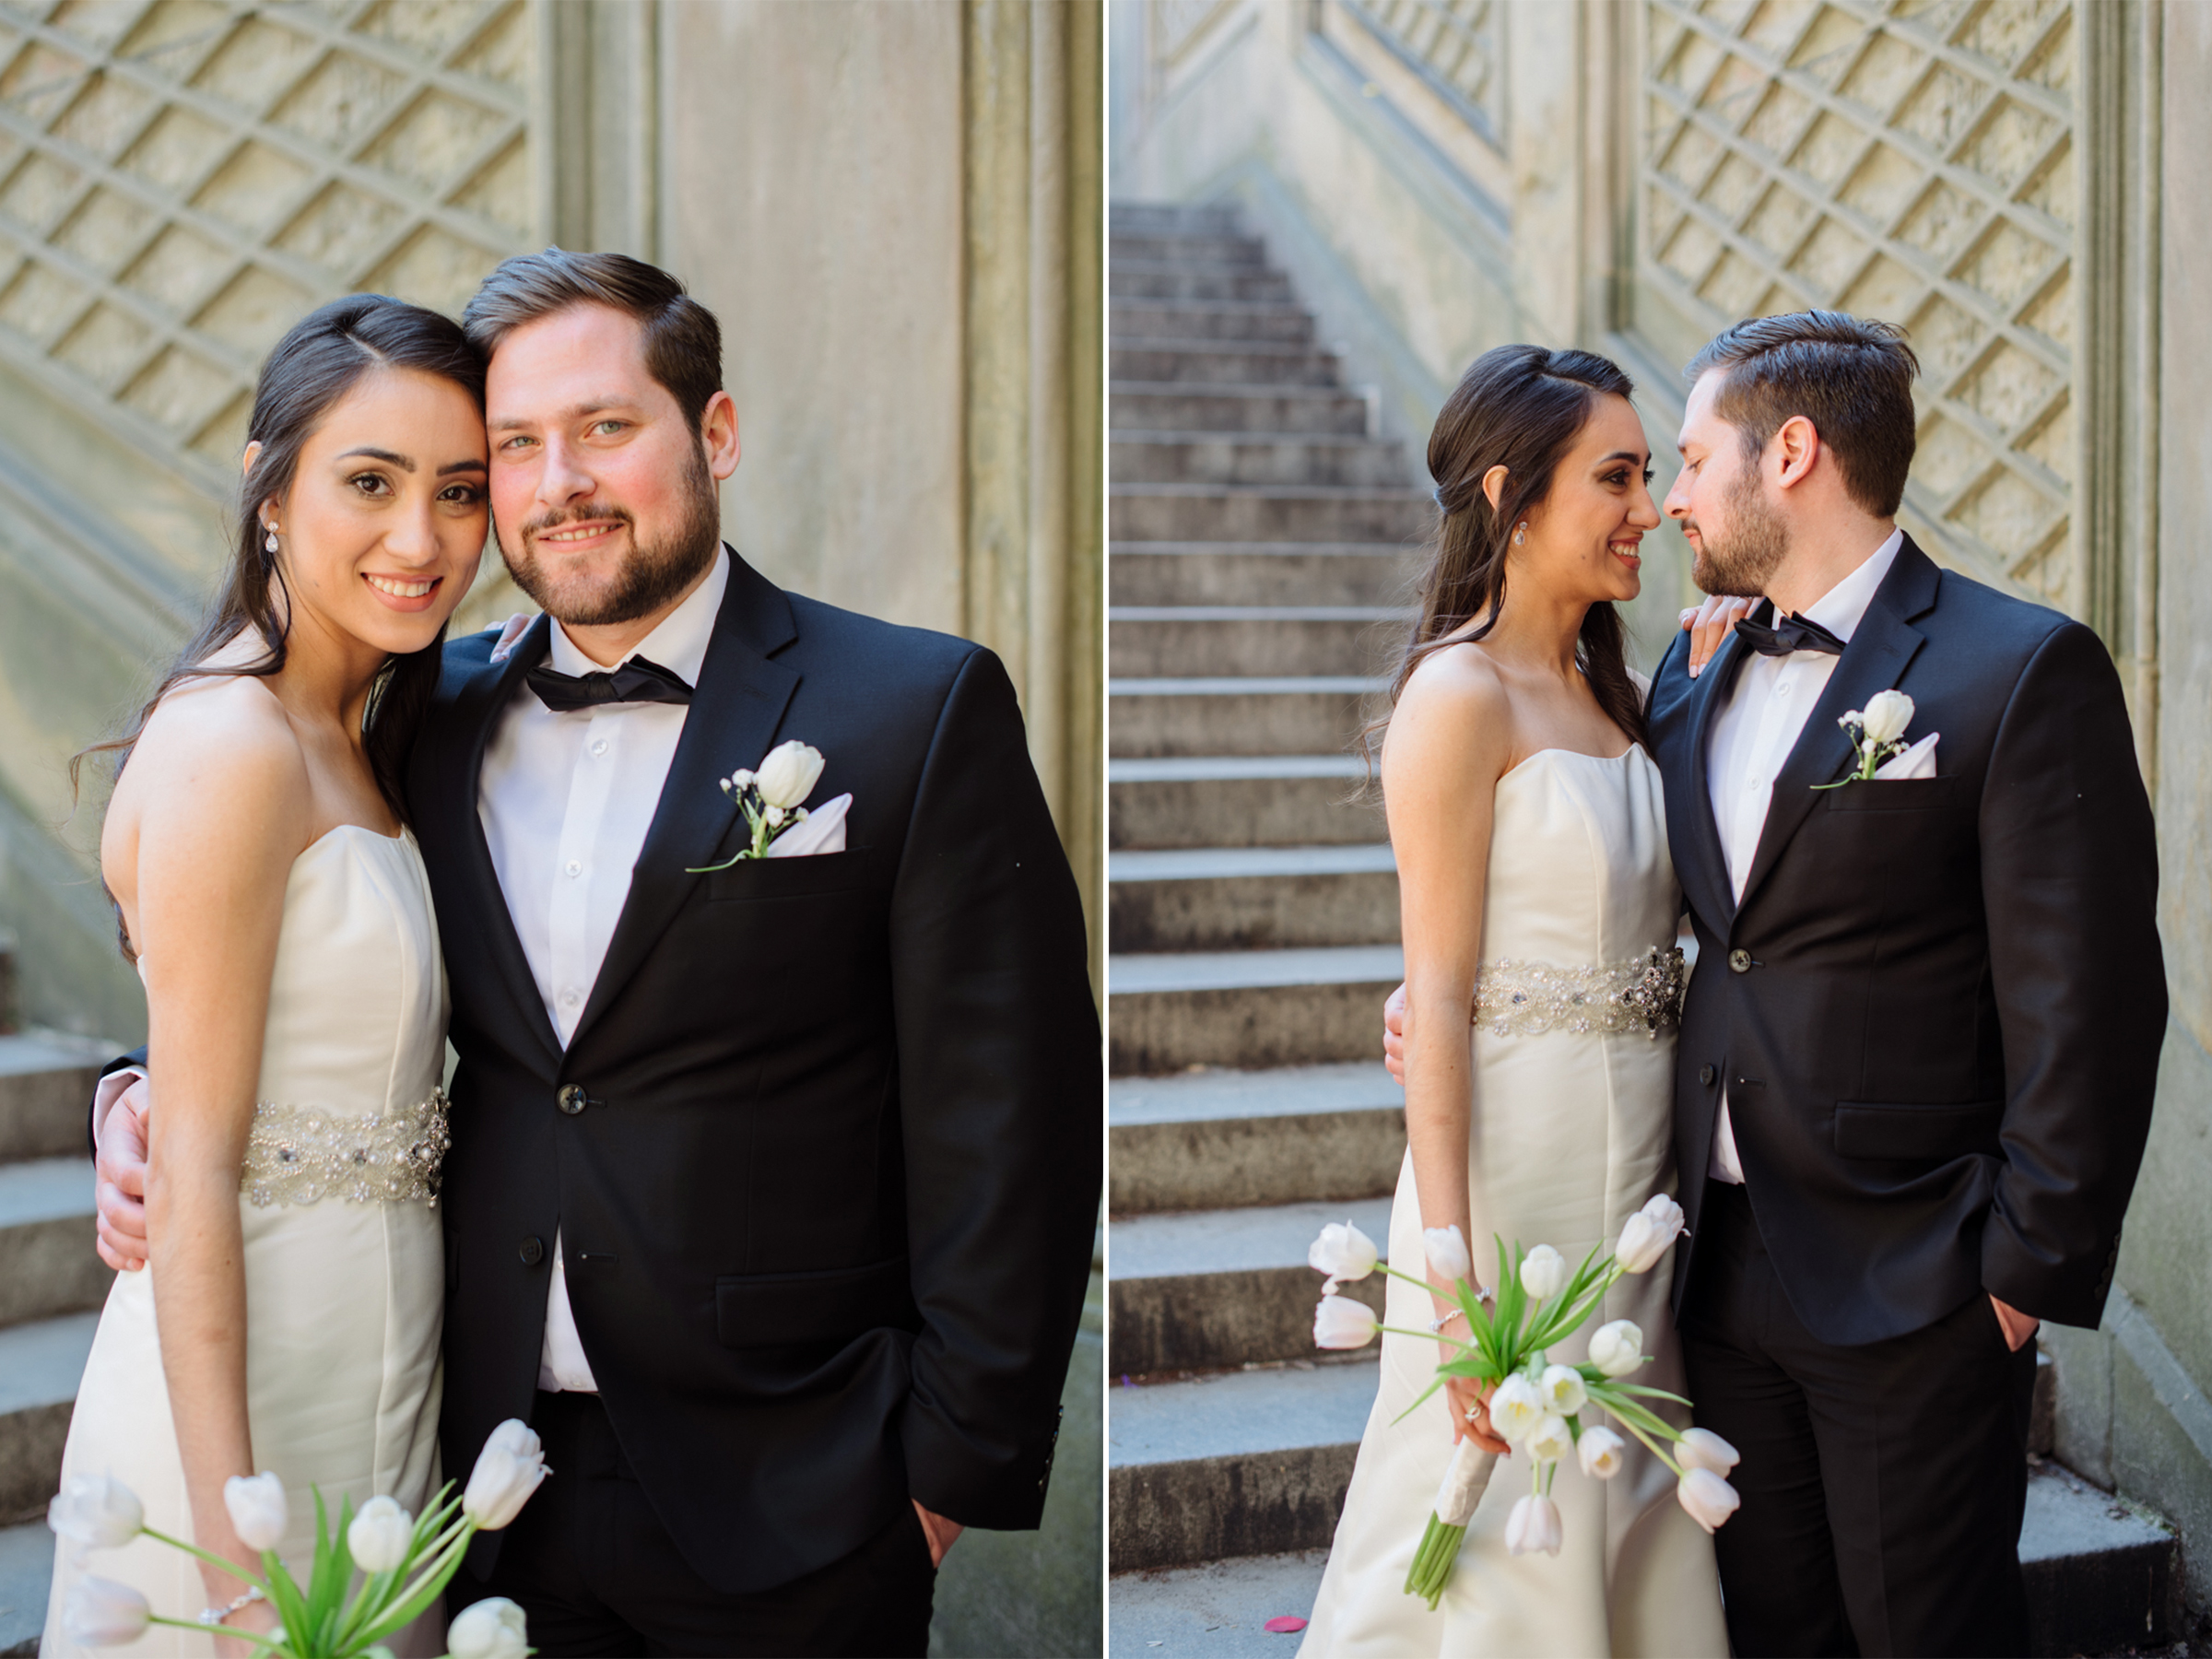 Anahi+David- Central Park Elopement Bethesda Fountain-Bride and Groom Portraits 2- New York City- Olivia Christina Photo.jpg